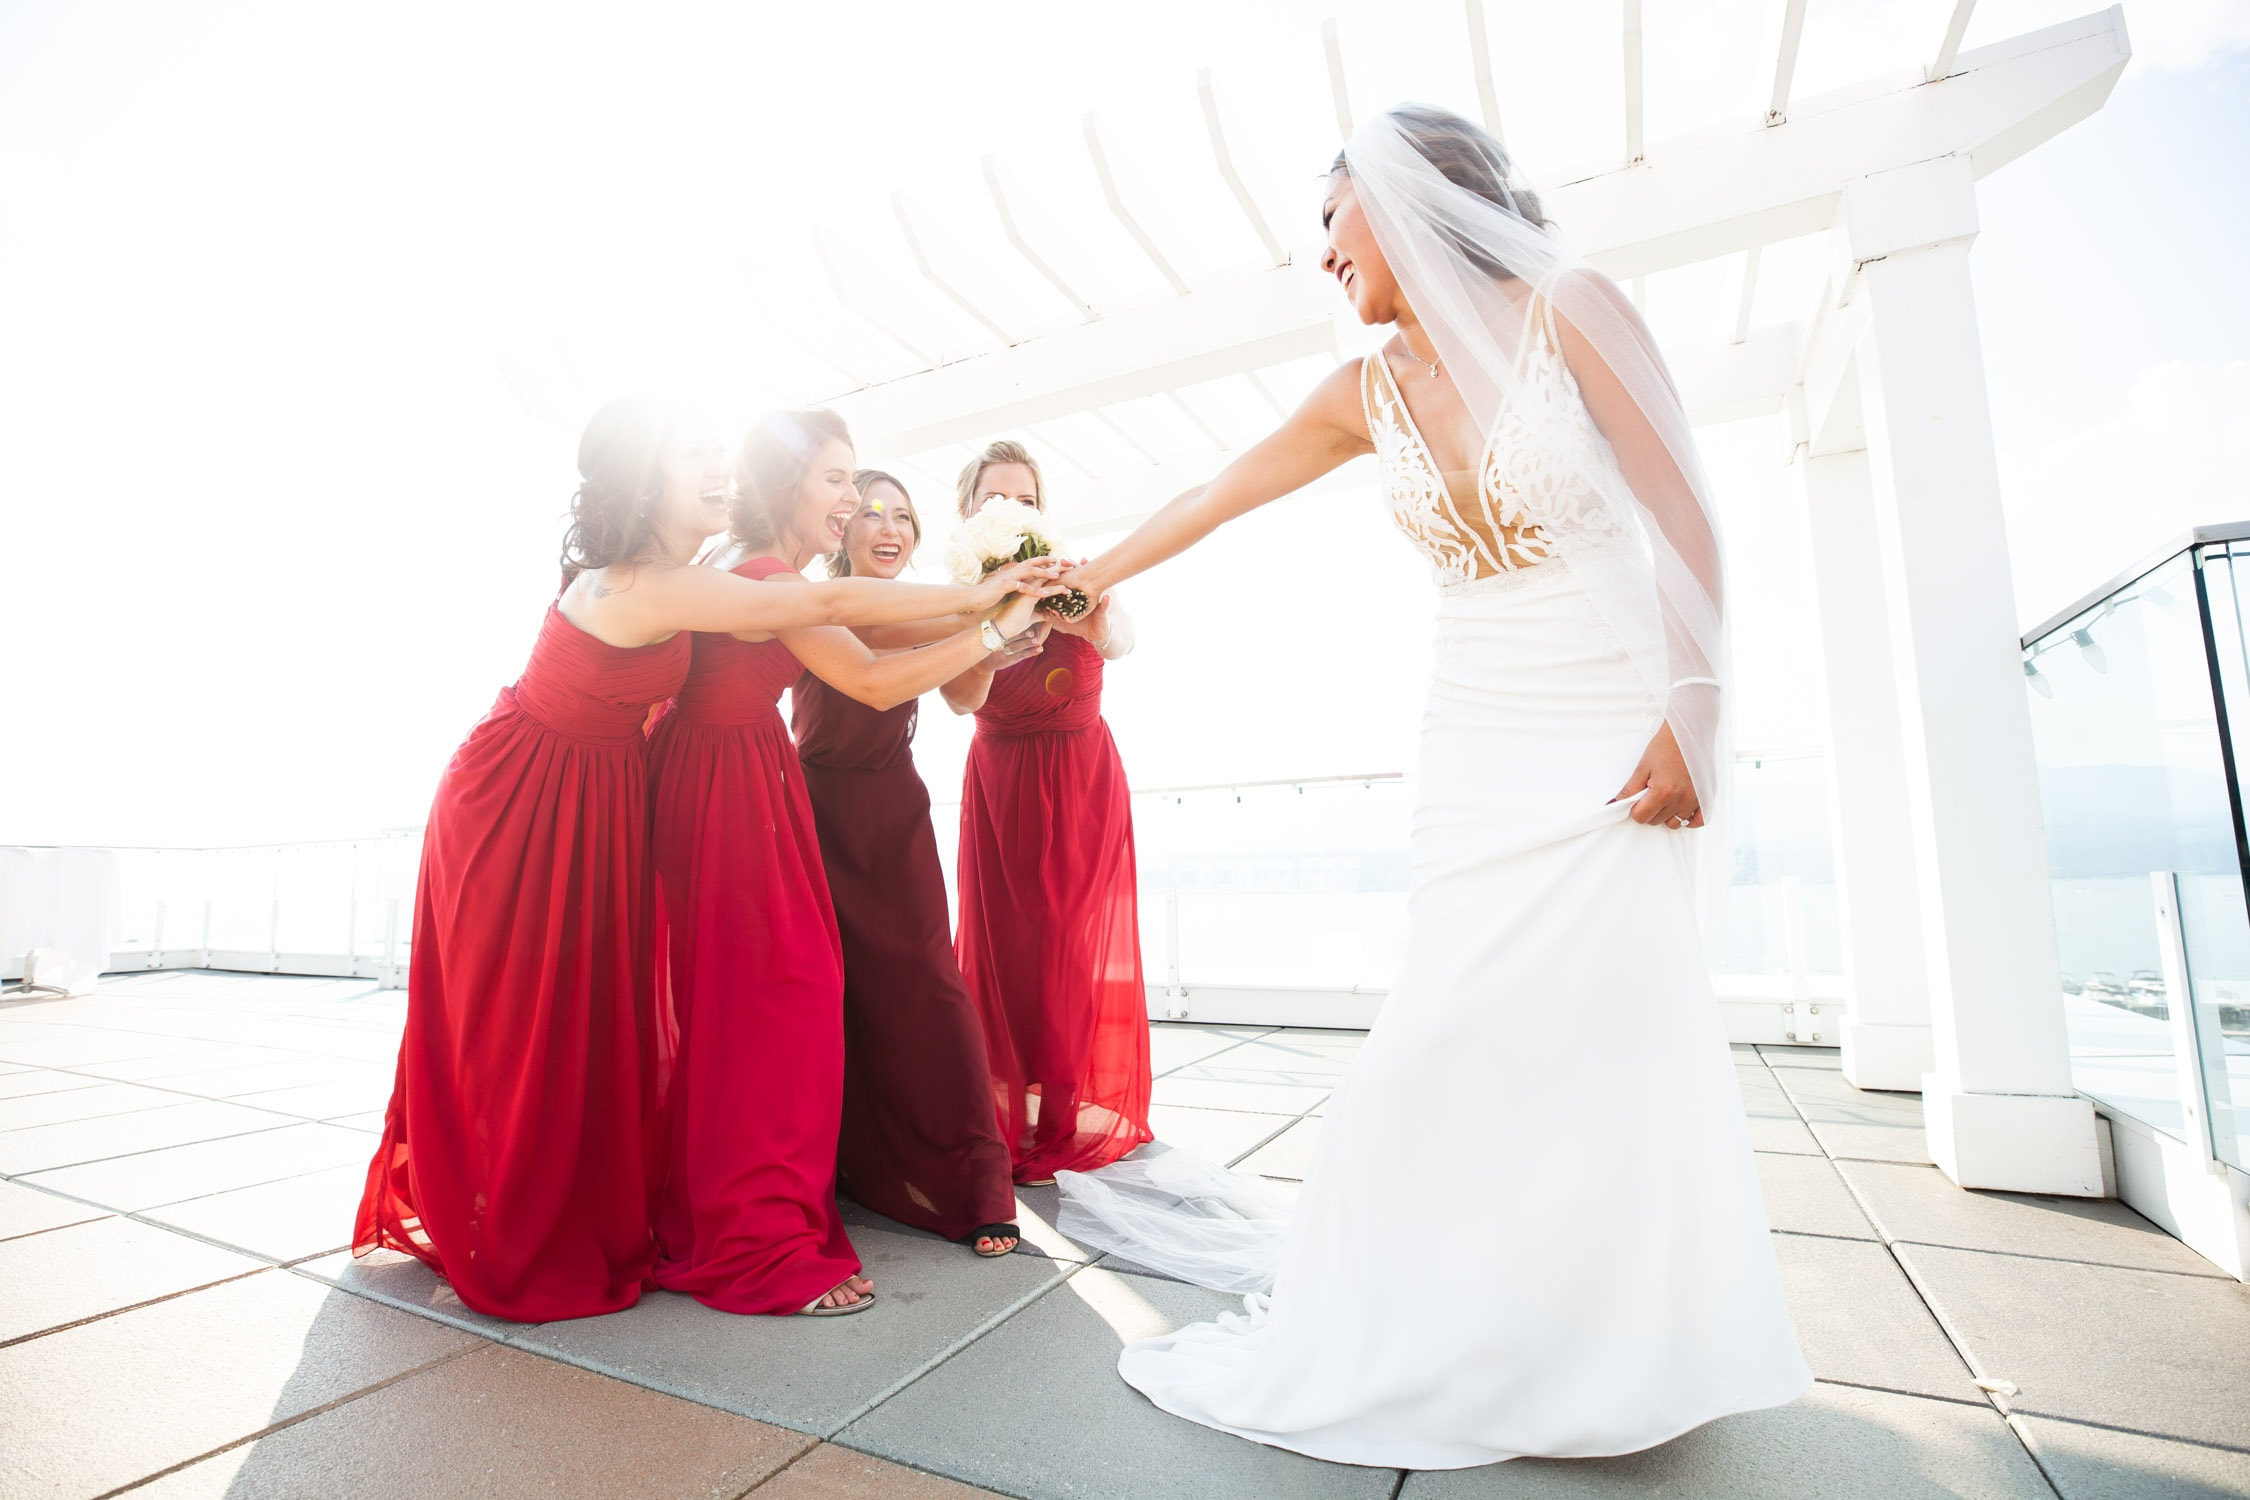 A bride playfully hands her bridesmaids, dressed in full length red dresses, her bouquet with a big smile